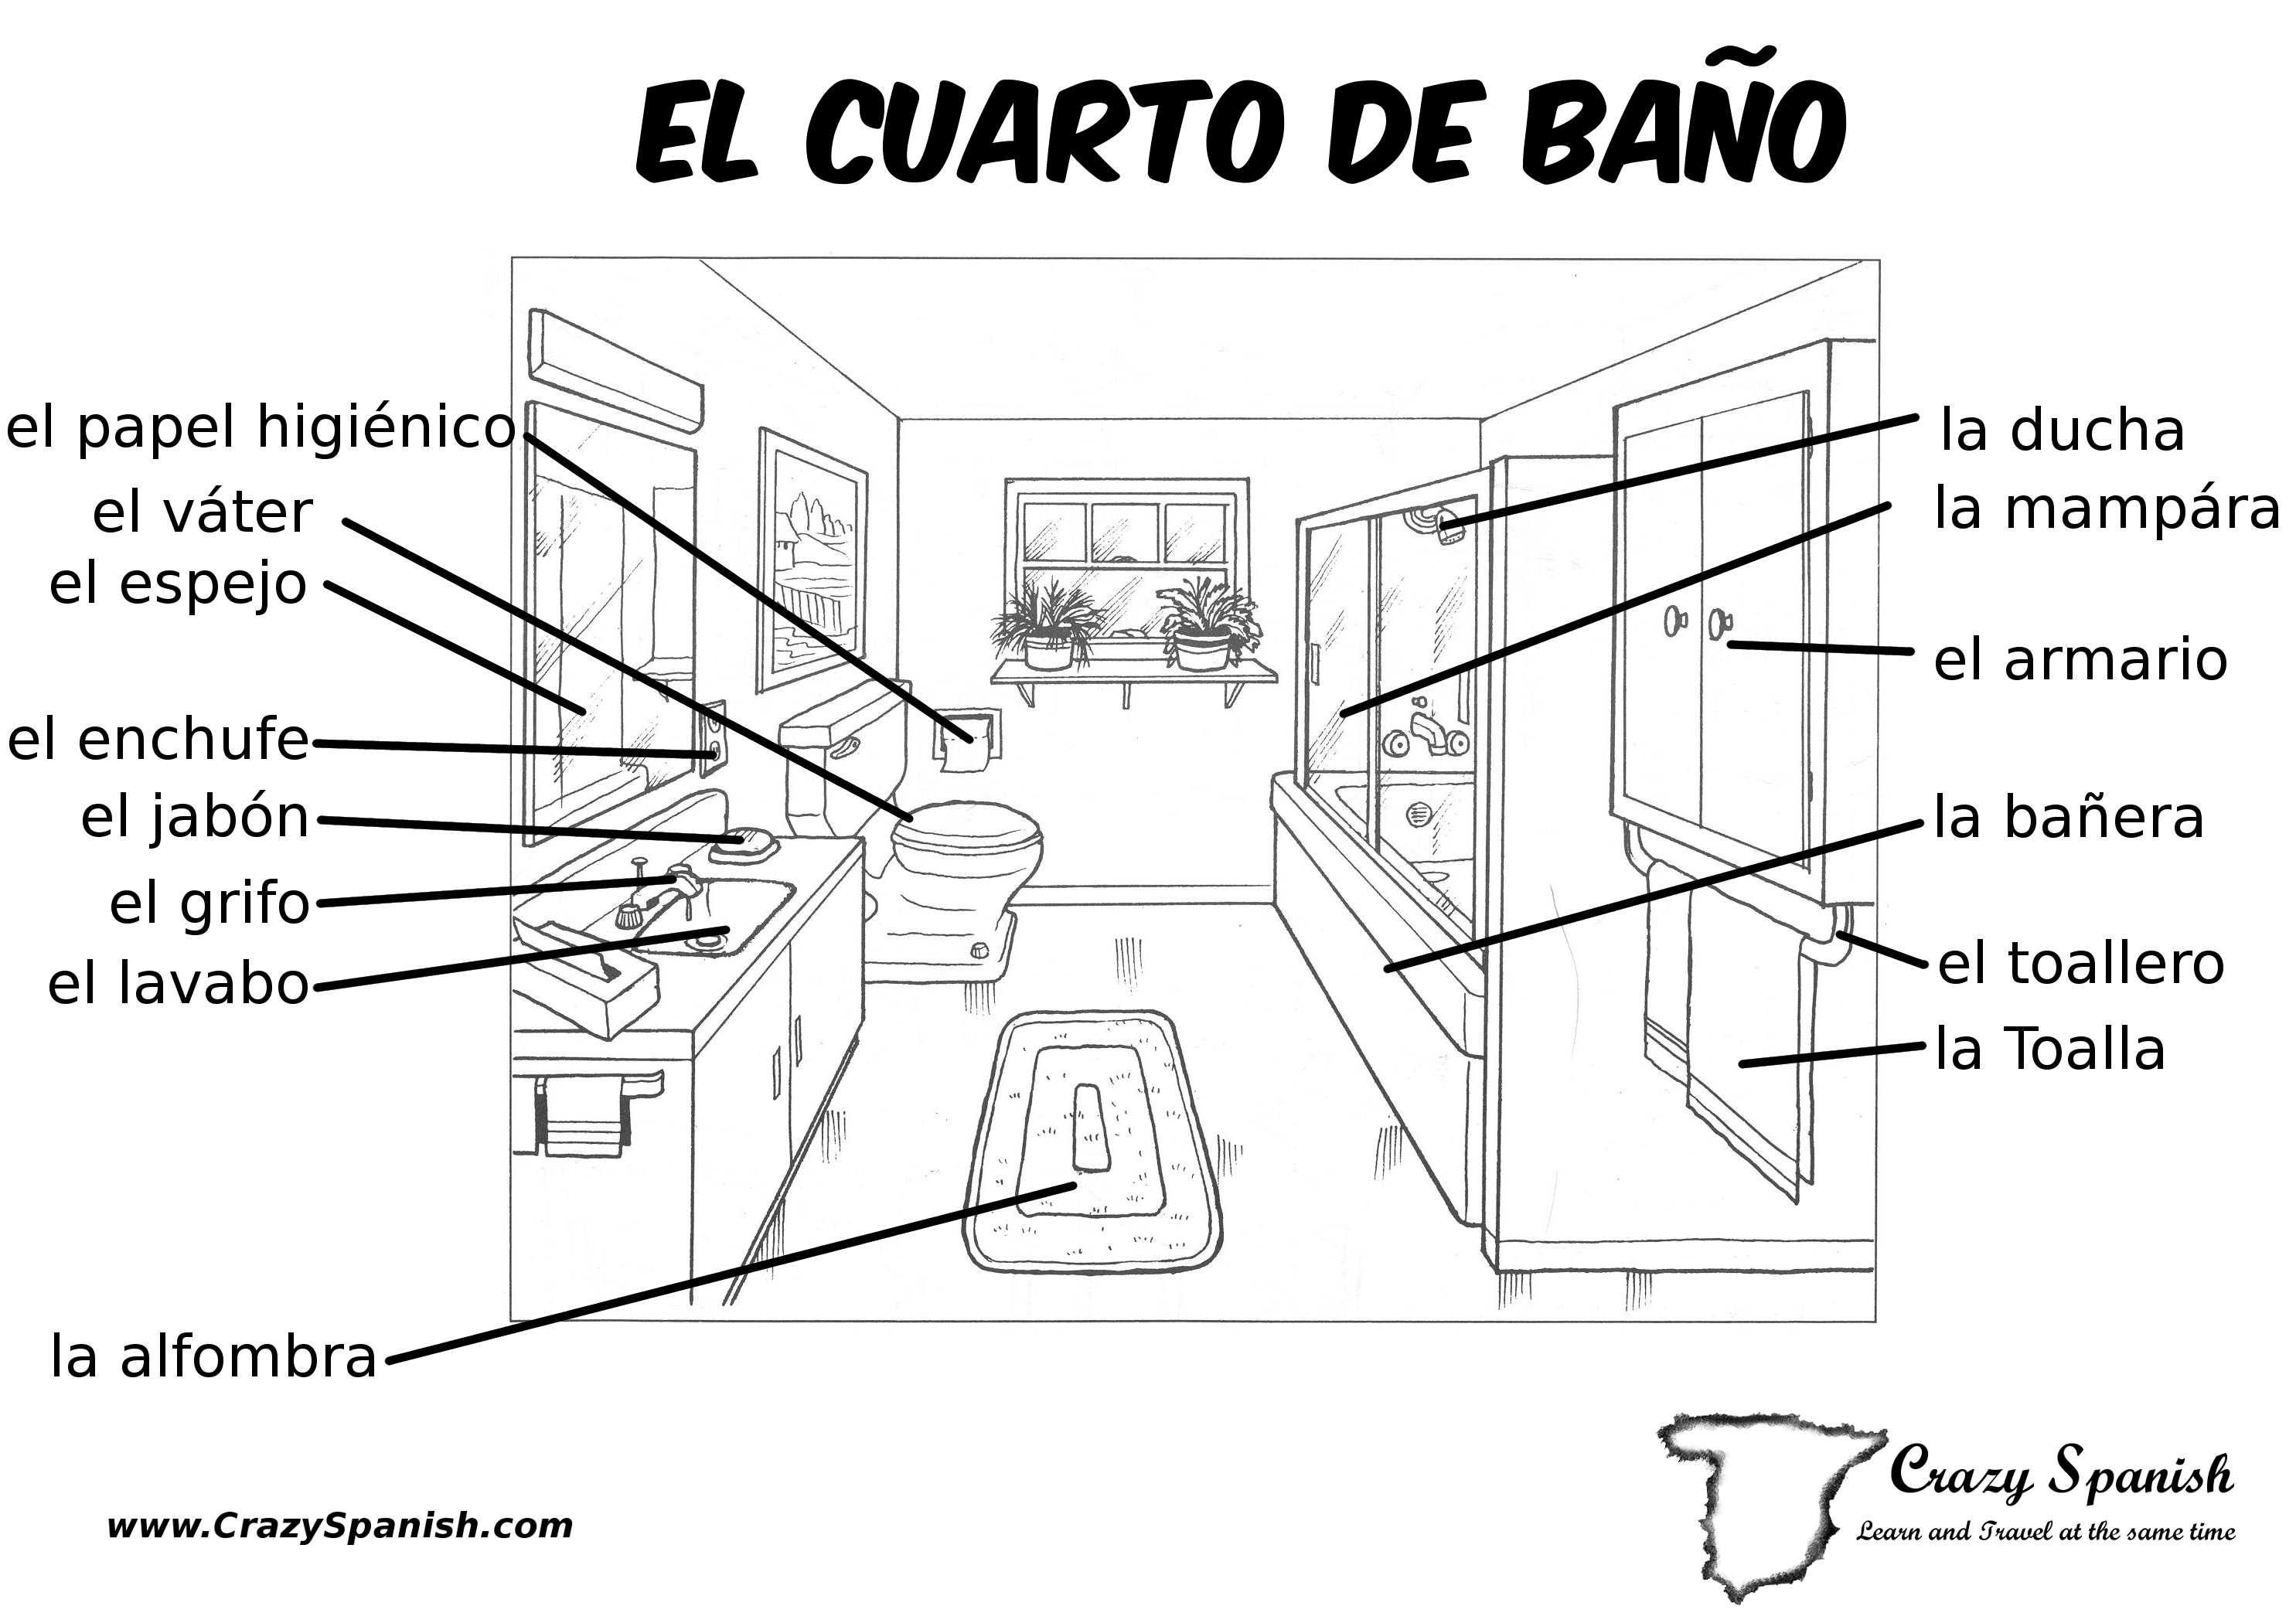 El cuarto de baño learn spanish vocabulary for the bathroom print it and put it at home provided by www crazyspanish com